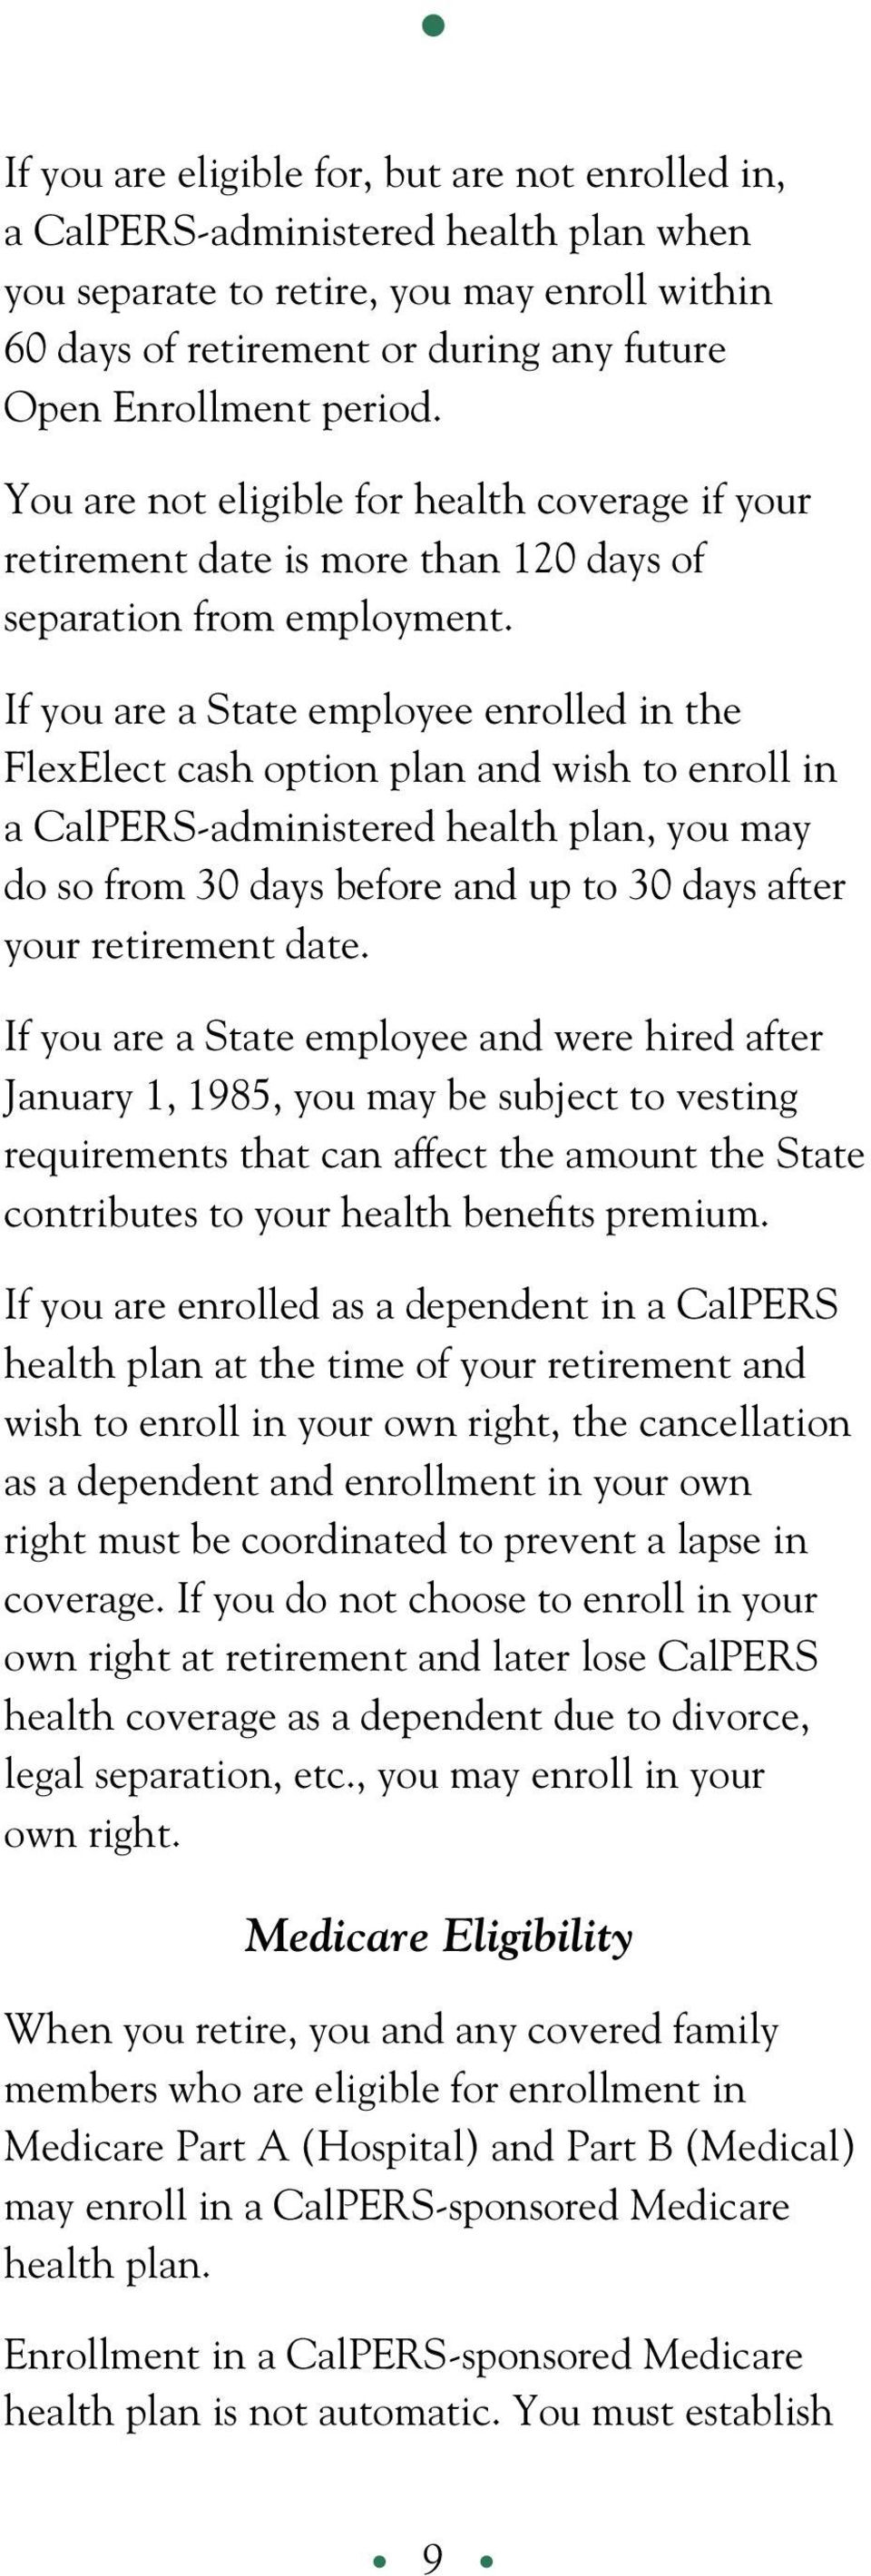 If you are a State employee enrolled in the FlexElect cash option plan and wish to enroll in a CalPERS-administered health plan, you may do so from 30 days before and up to 30 days after your